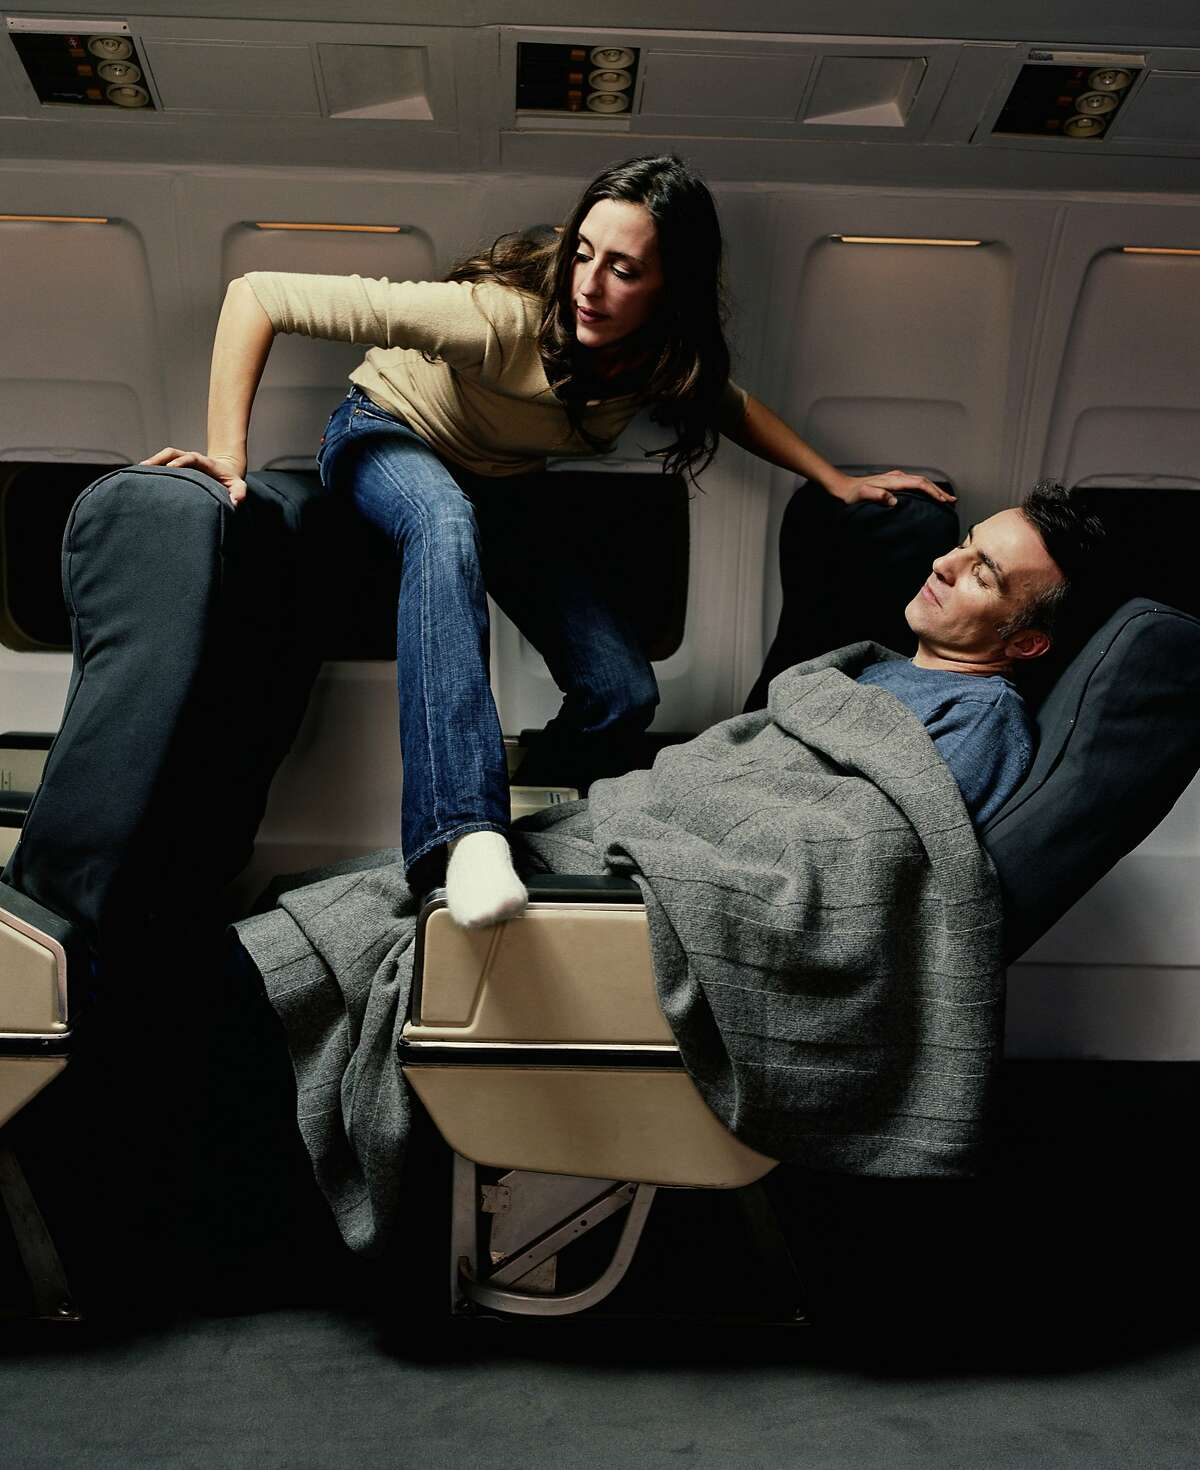 17. The Seat Switcher (cited by 13% of respondents): Always on the lookout to move to an empty or semi-empty row. But with so many flights overbooked, this species may soon be endangered.